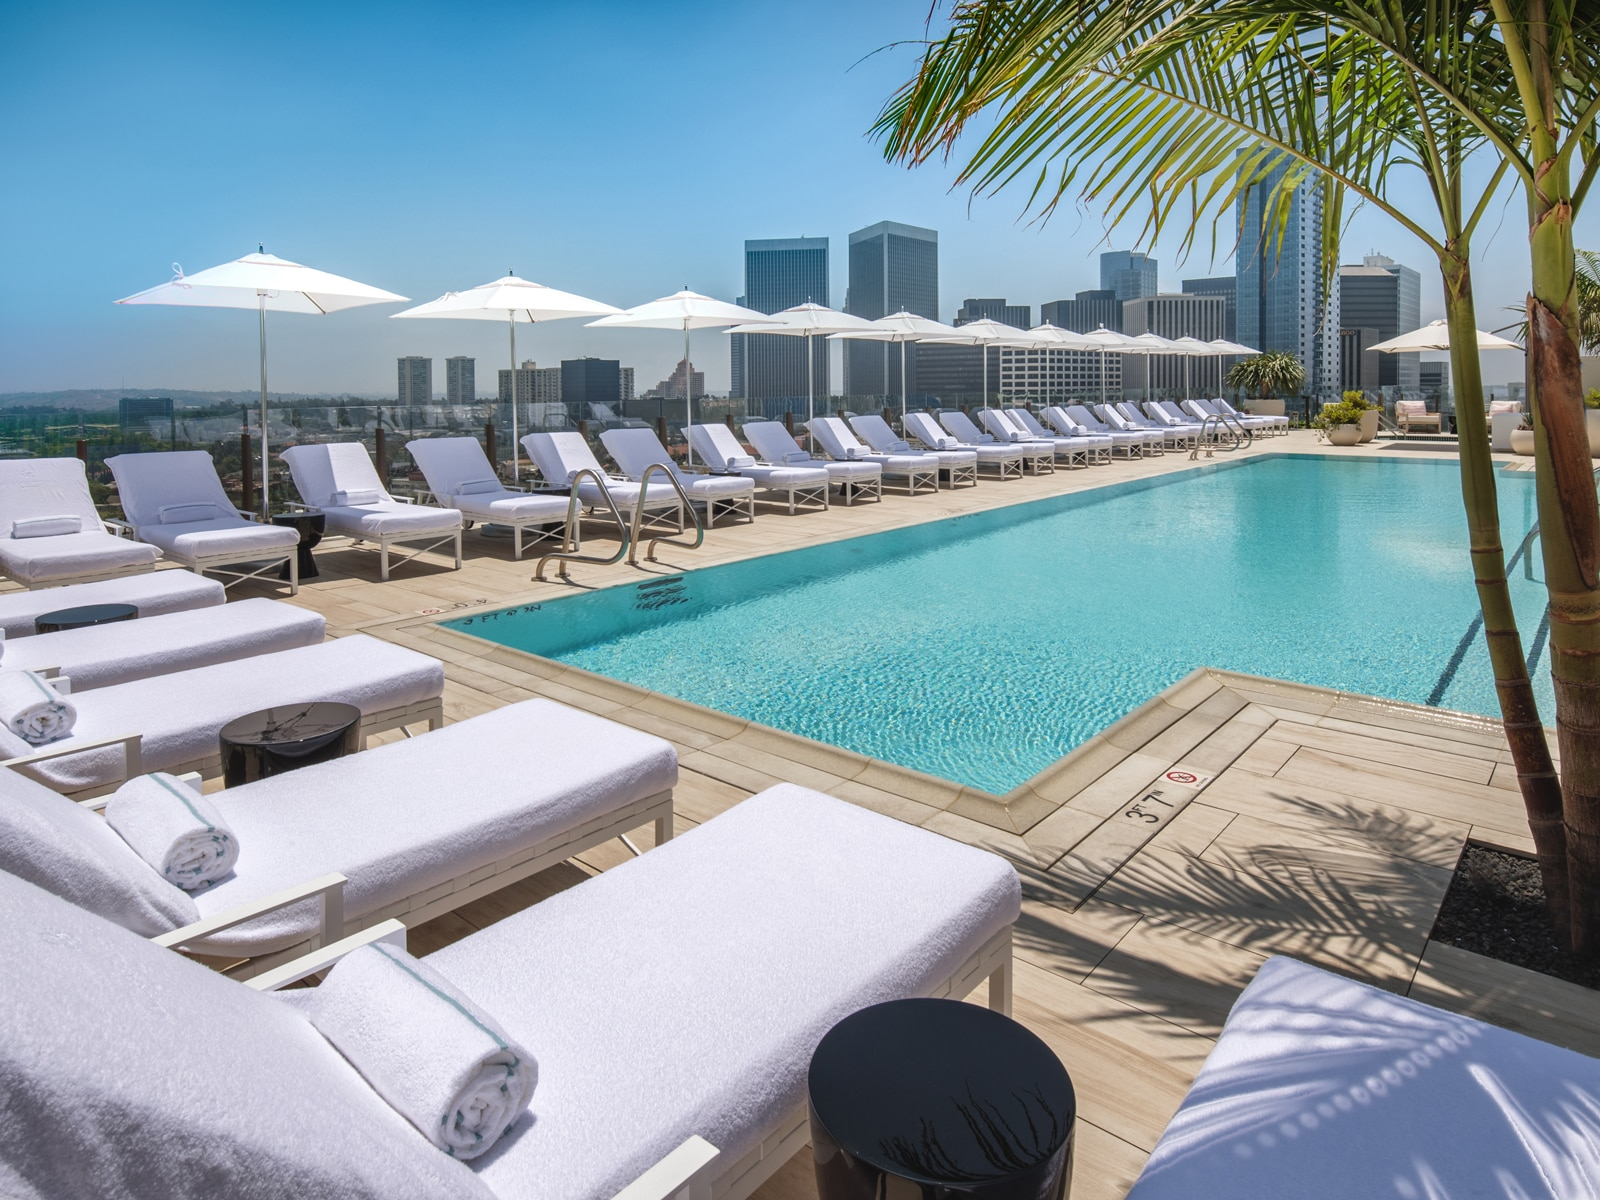 Voucher Codes For Los Angeles Hotels